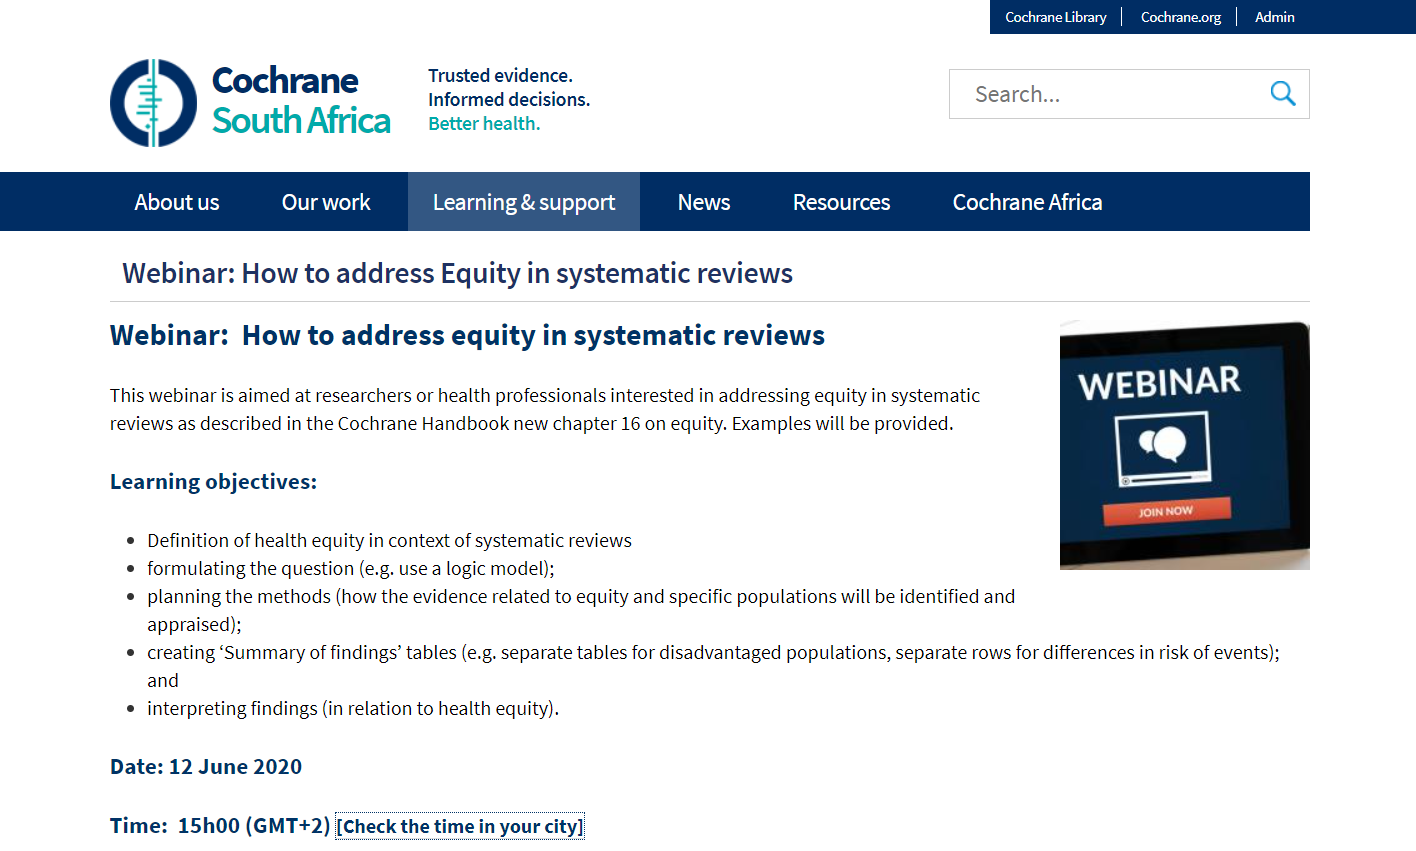 How to address Equity in systematic reviews